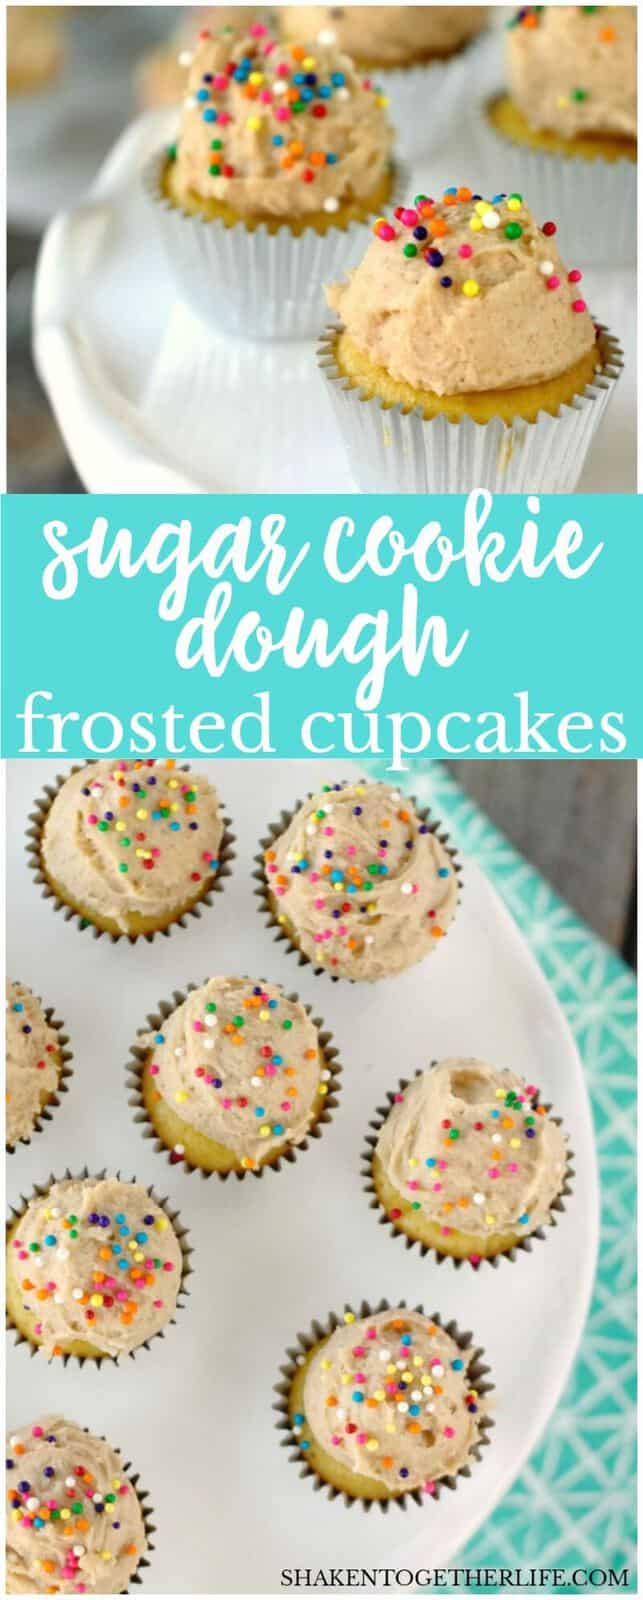 Mini Sugar Cookie Dough Frosted Cupcakes - tender yellow cupcakes topped with a dollop of eggless sugar cookie dough!